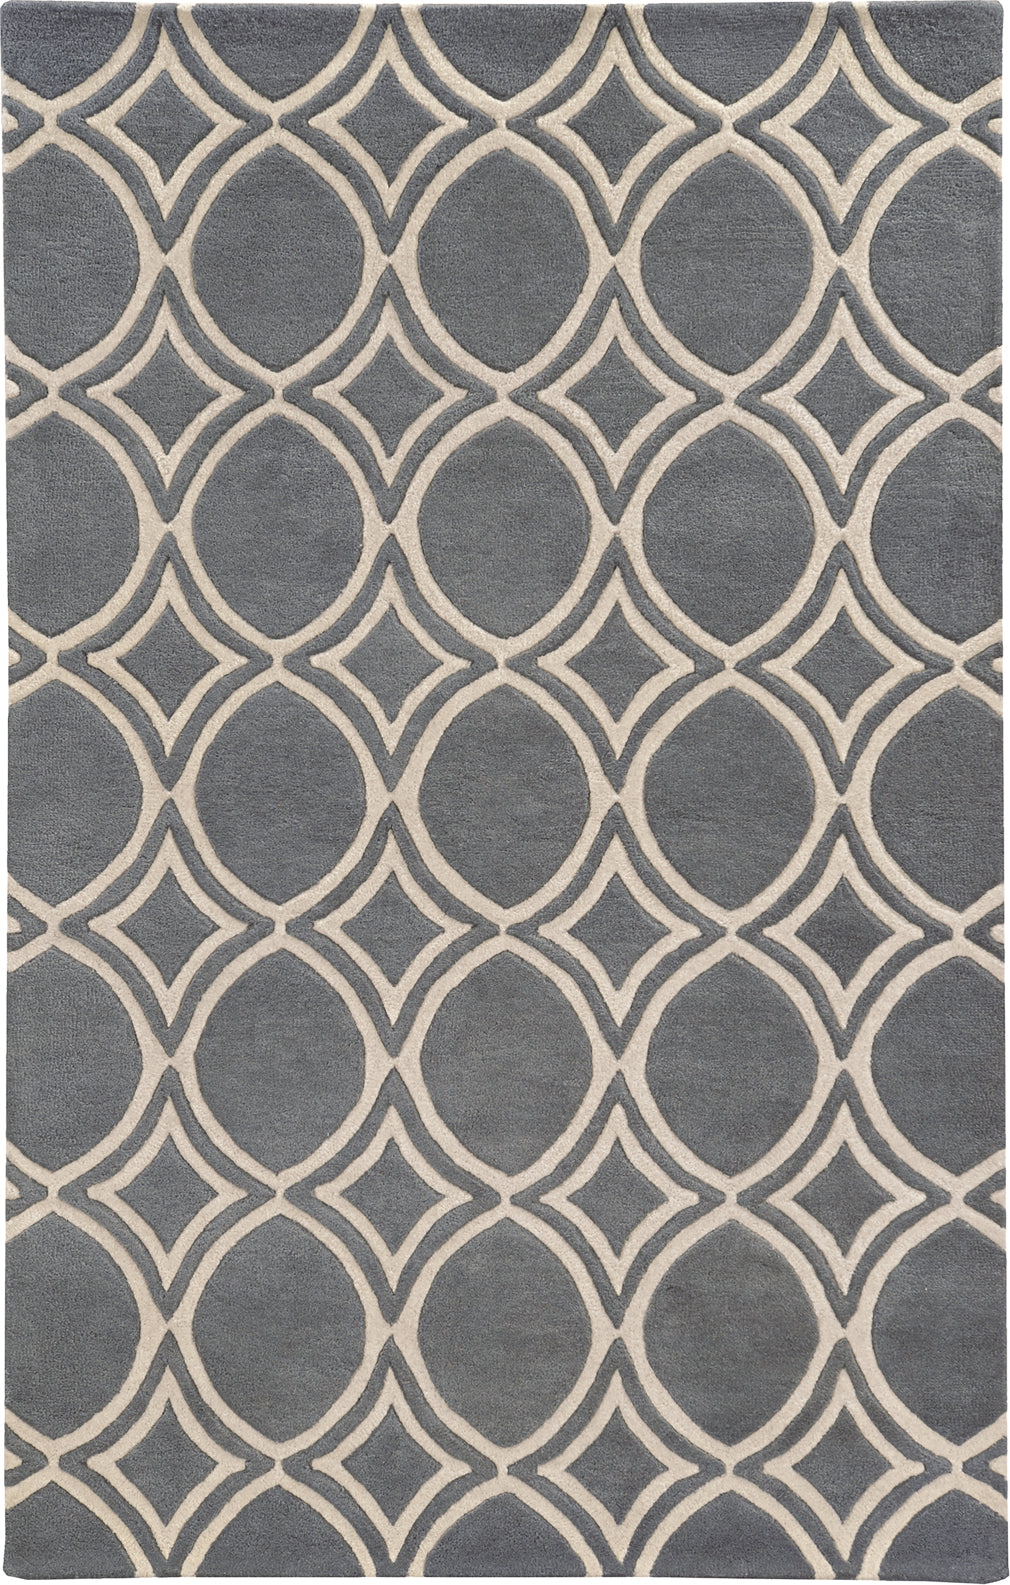 Pantone Universe Optic 41107 Charcoal/Ivory Area Rug main image